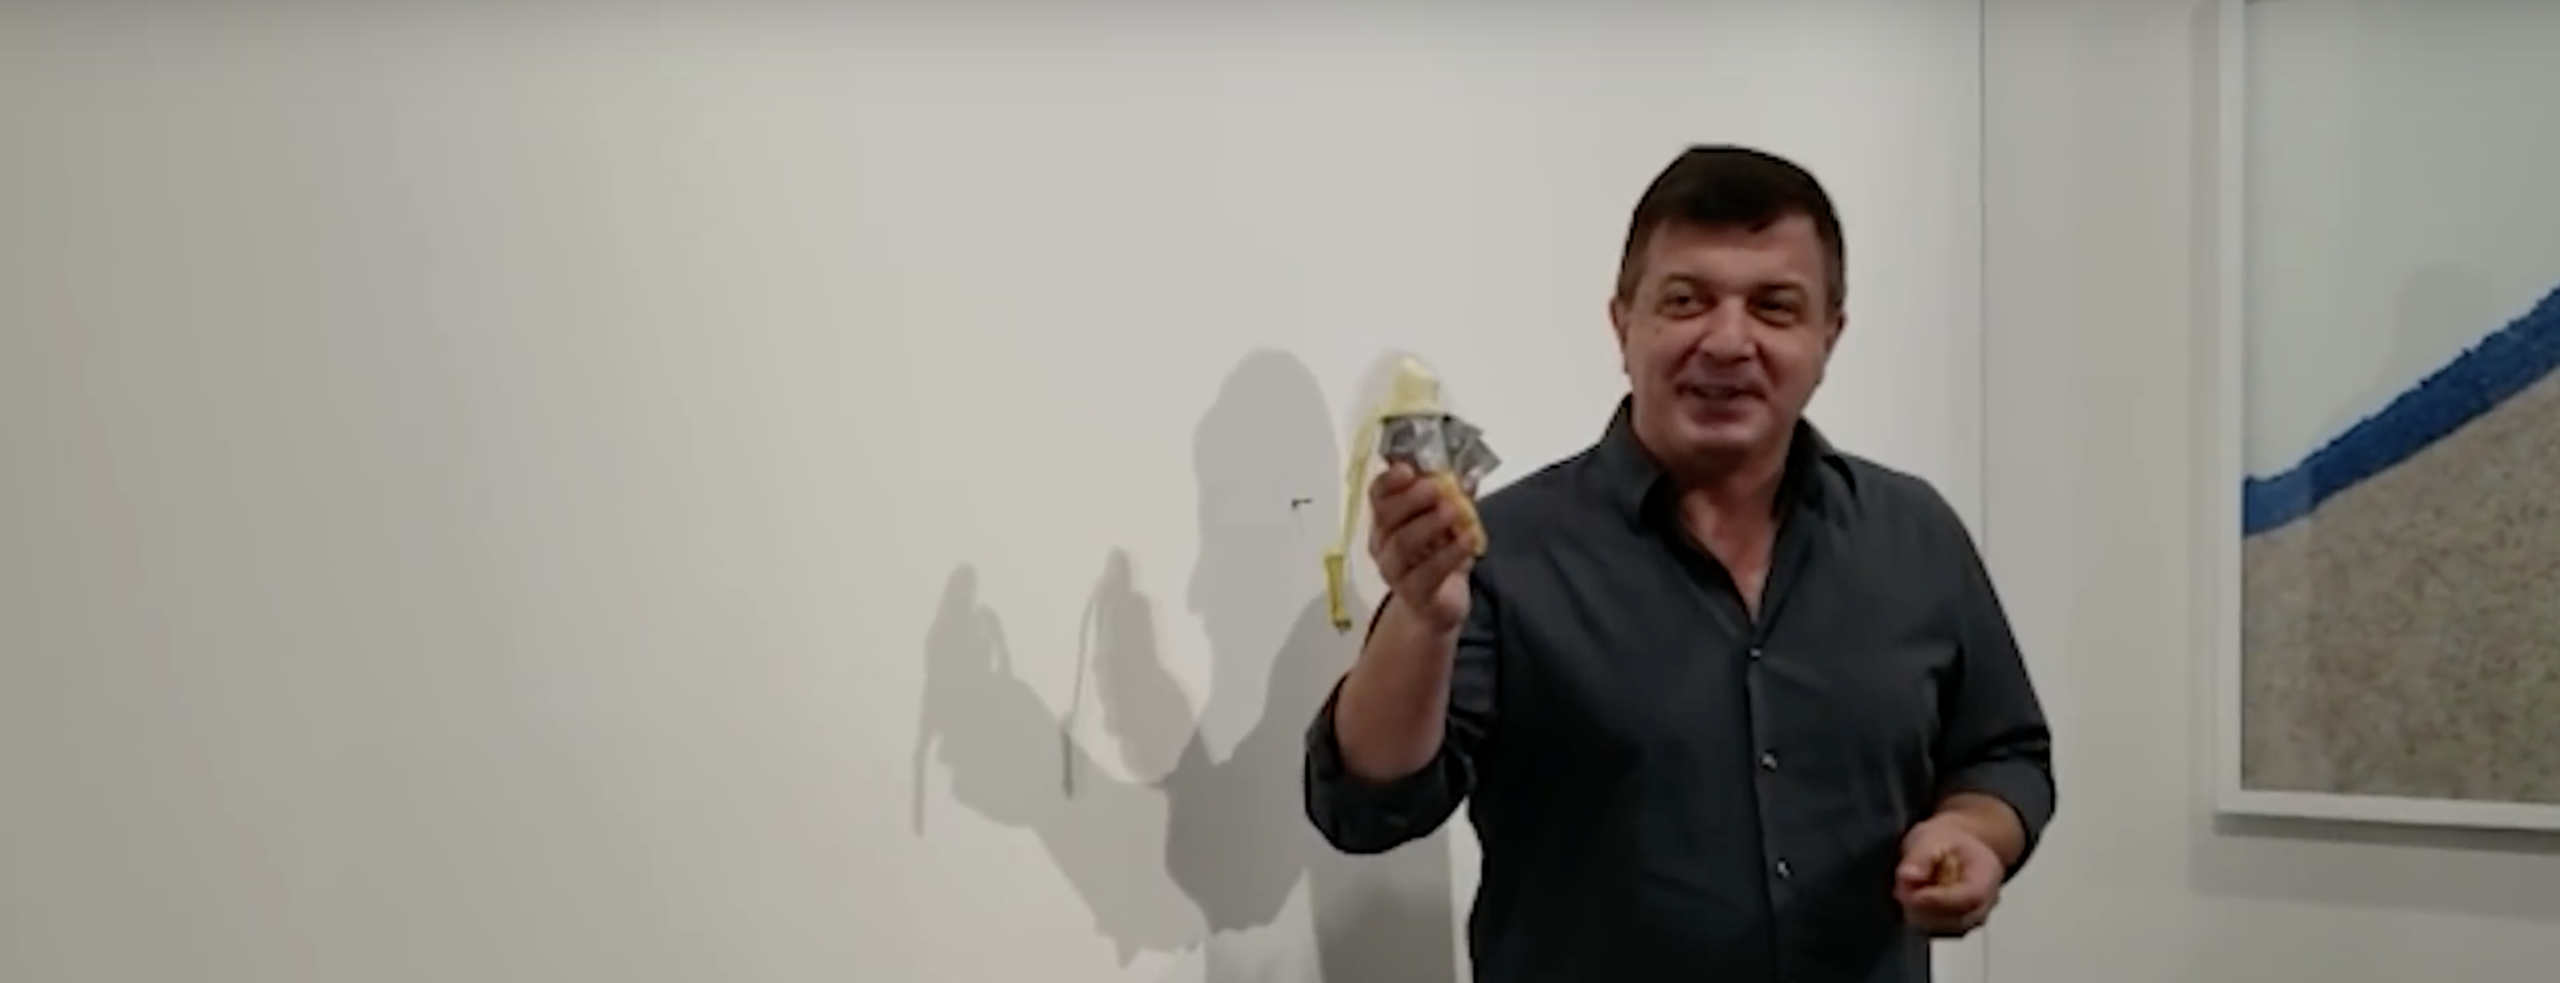 Art Basel Had A $150K Banana 'Art Installation' Duct-Taped To A Wall. A Guy Just Ate It